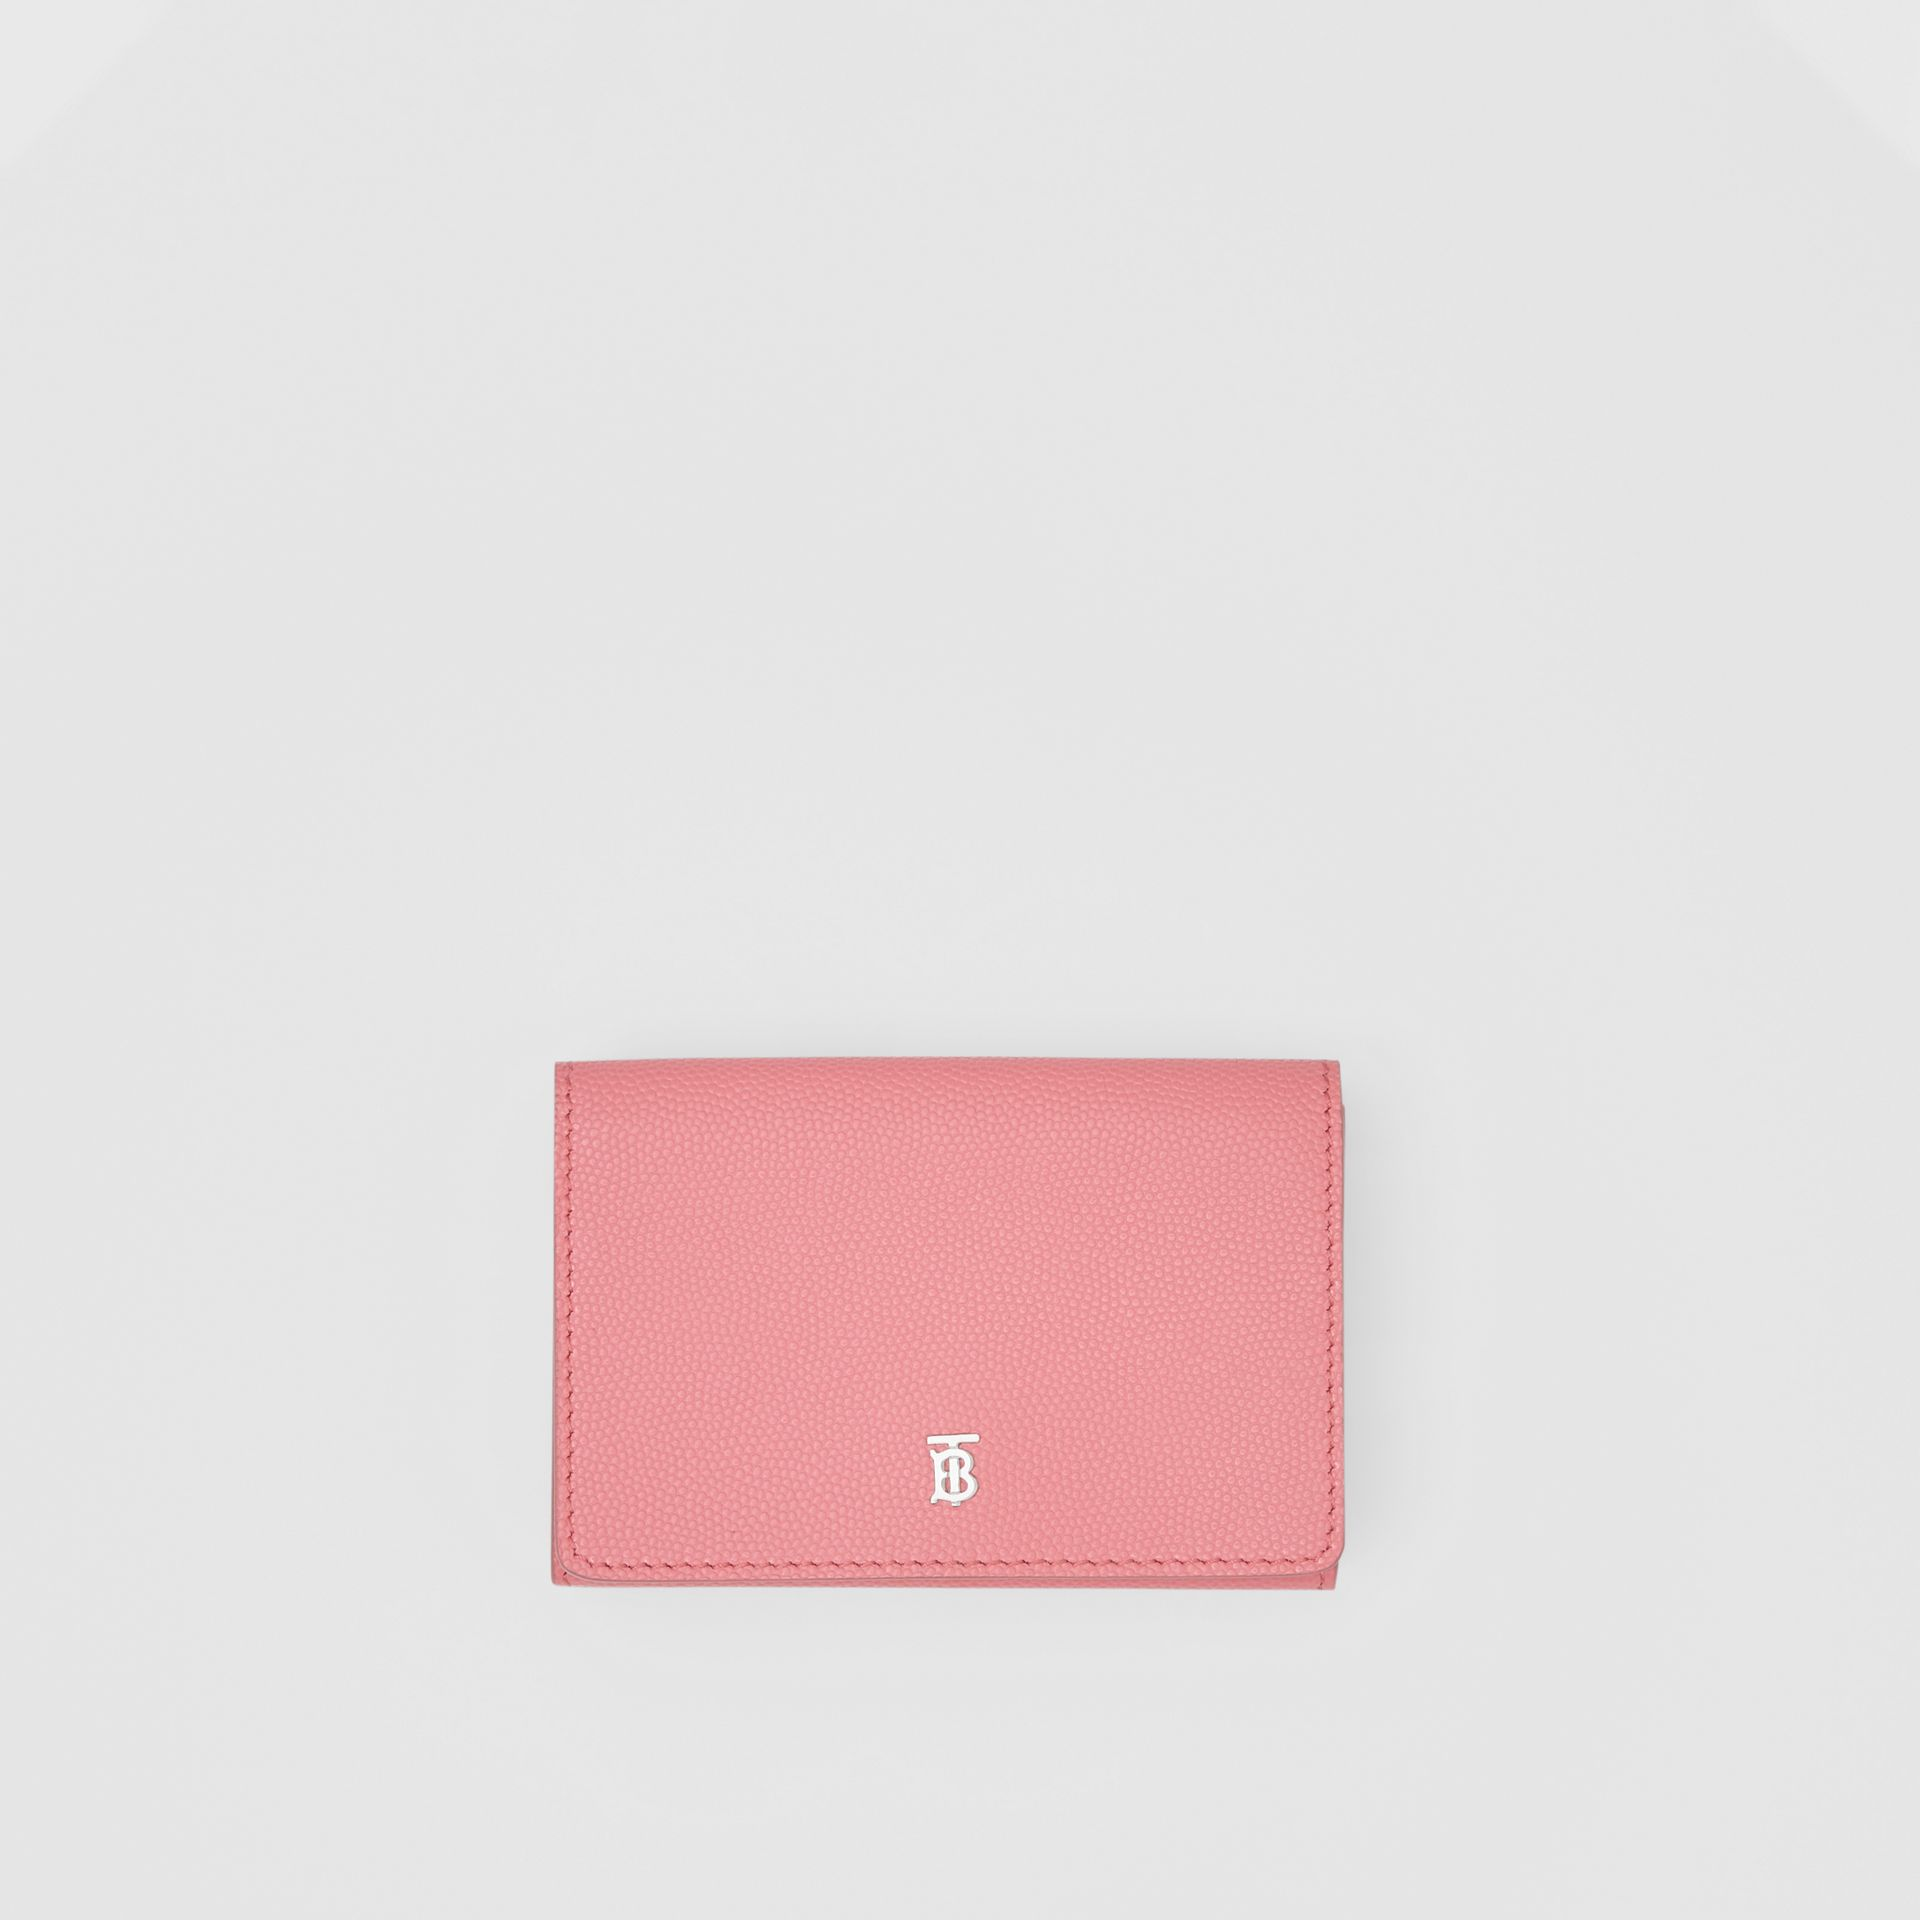 Small Grainy Leather Folding Wallet in Candy Floss/palladio - Women | Burberry - gallery image 0